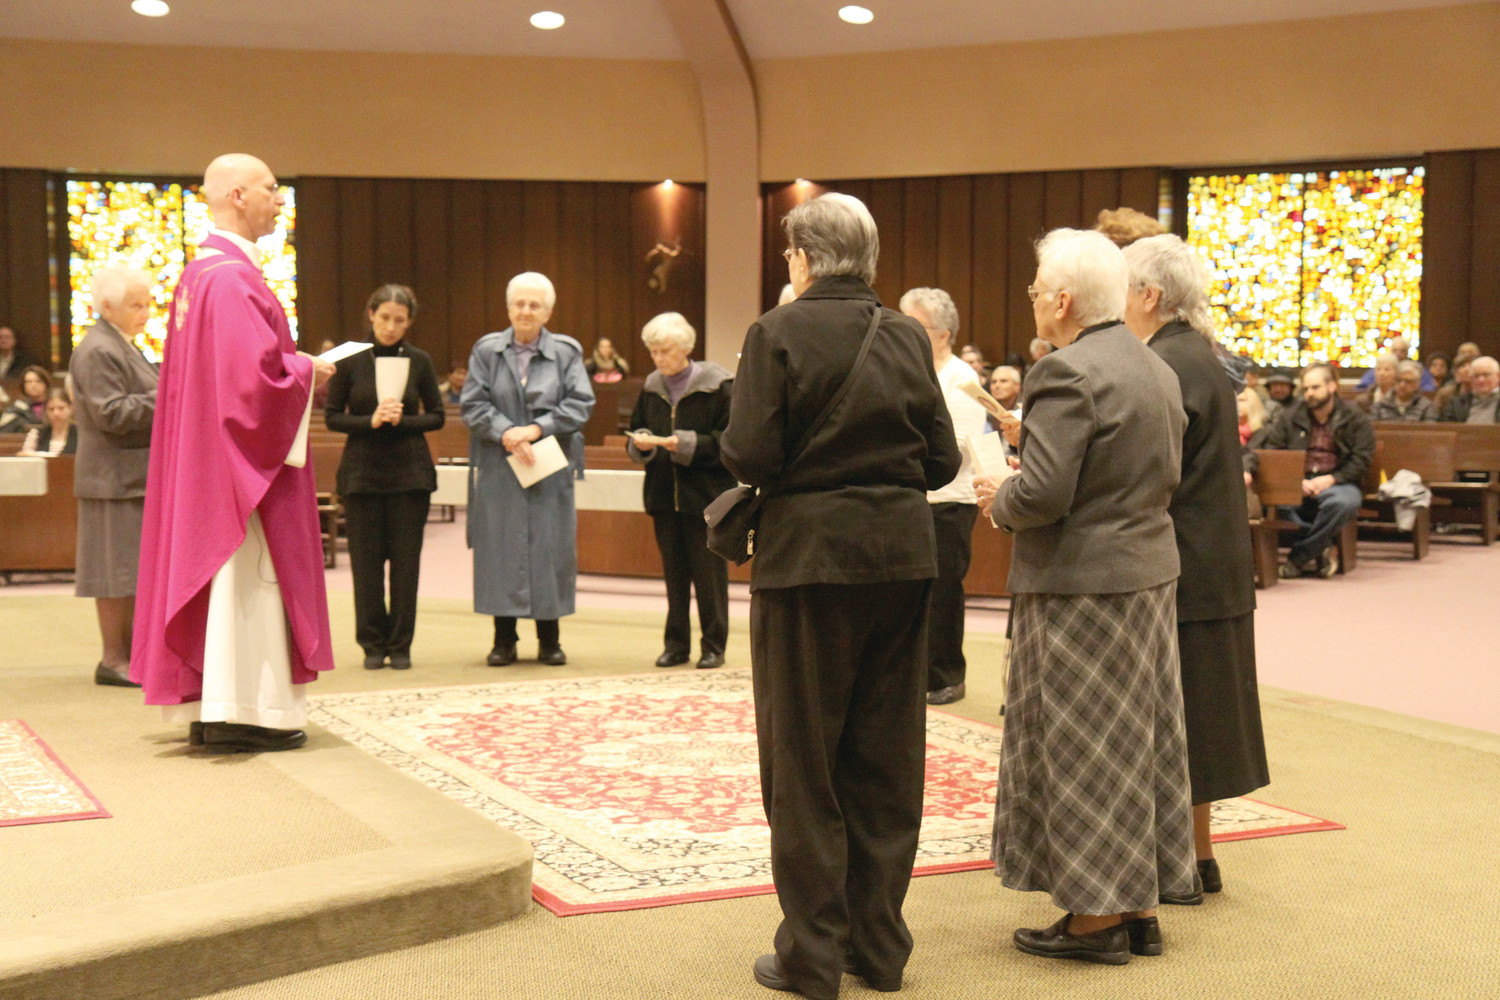 Sisters of the Religious of Jesus and Mary renewed their vows at St. Timothy Church, Warwick, on Sunday, Feb. 25 during a Mass celebrating the 200th anniversary of their order. St. Claudine Thévenet founded the congregation in 1818 in Lyon, France.